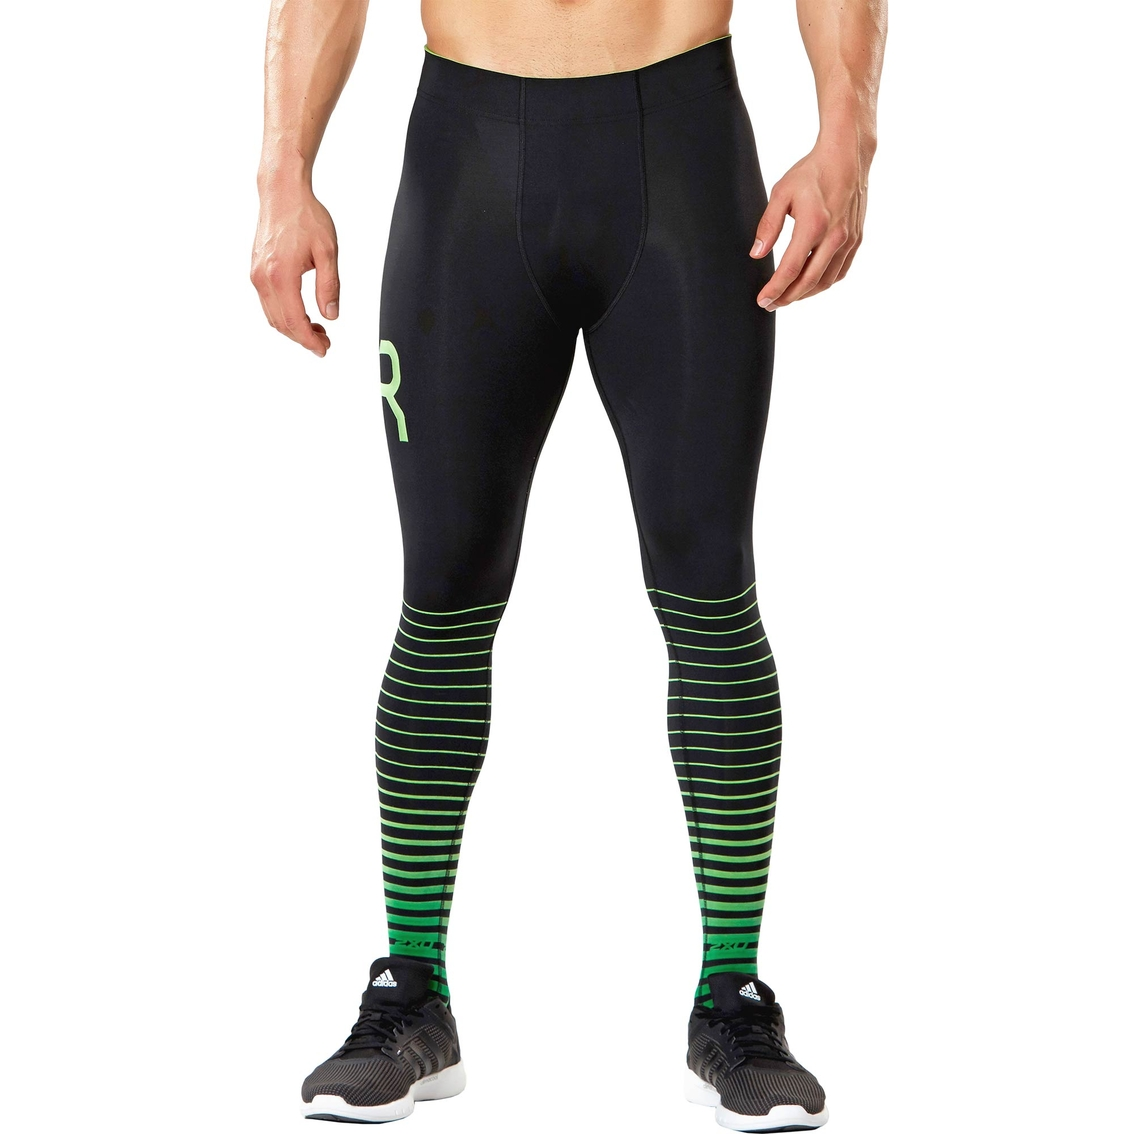 e7d50f0e66 2xu Men's Power Recovery Compression Tights | Pants | Father's Day ...